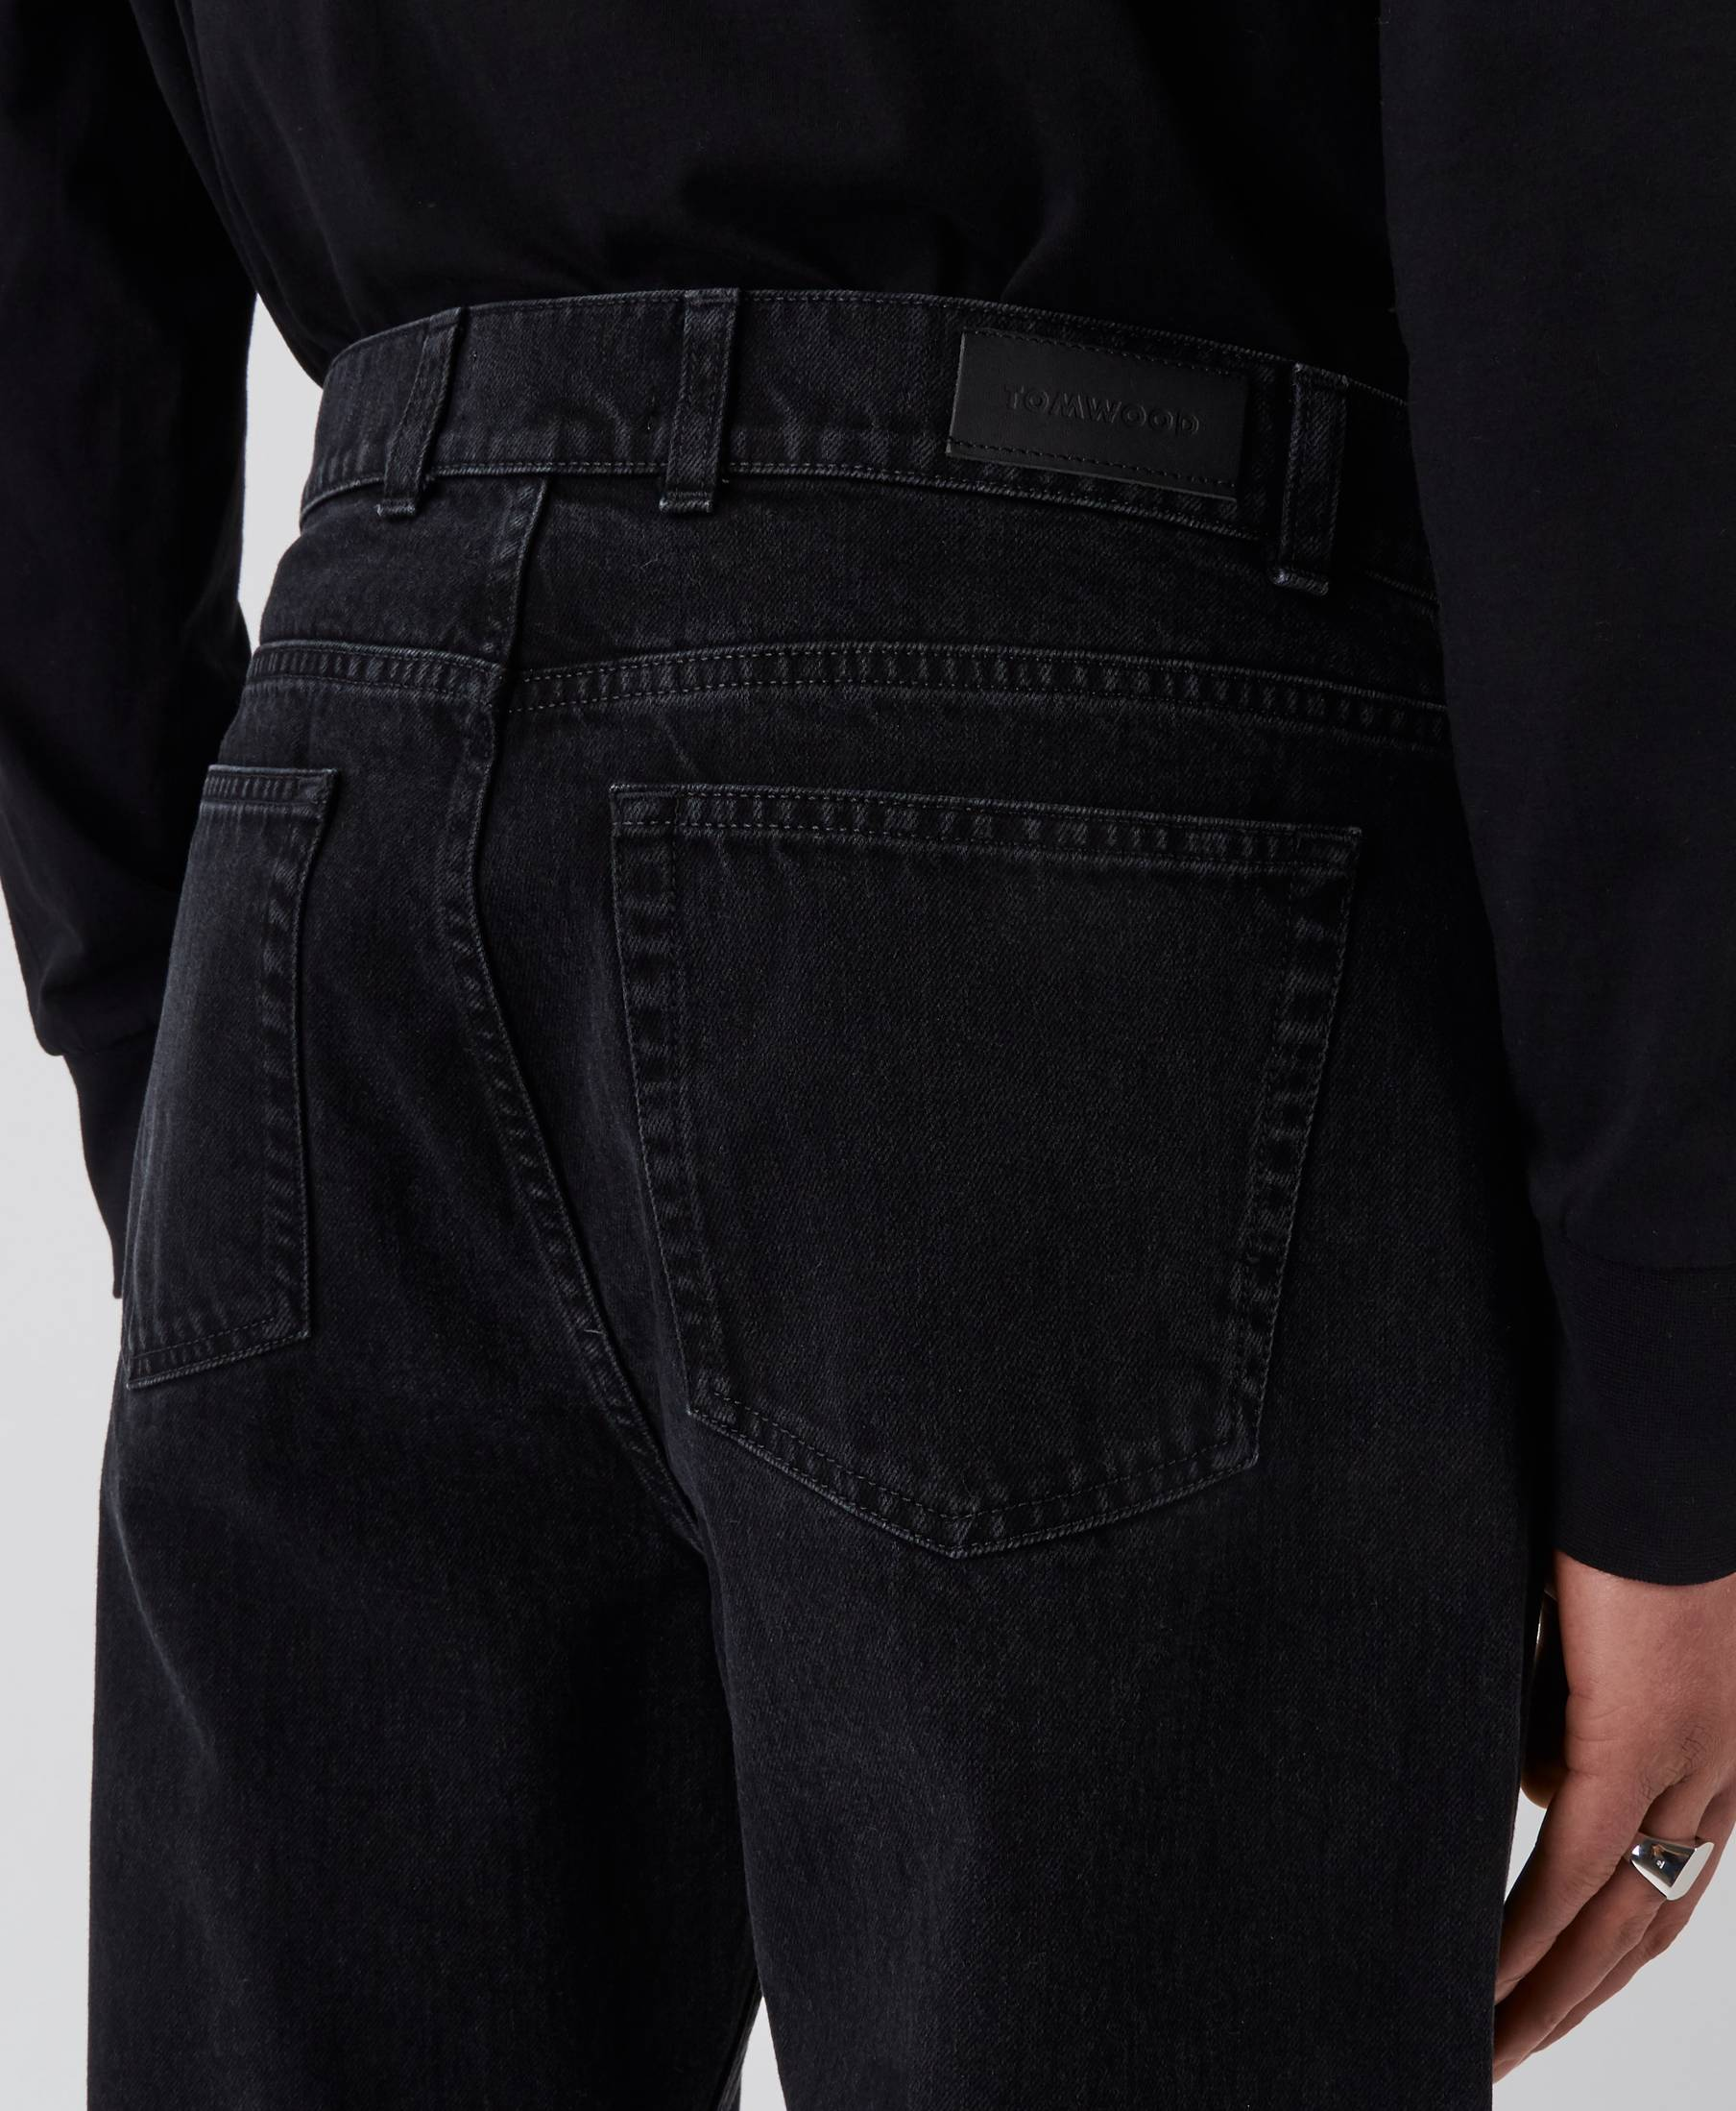 Sting Denim Pants Used Black